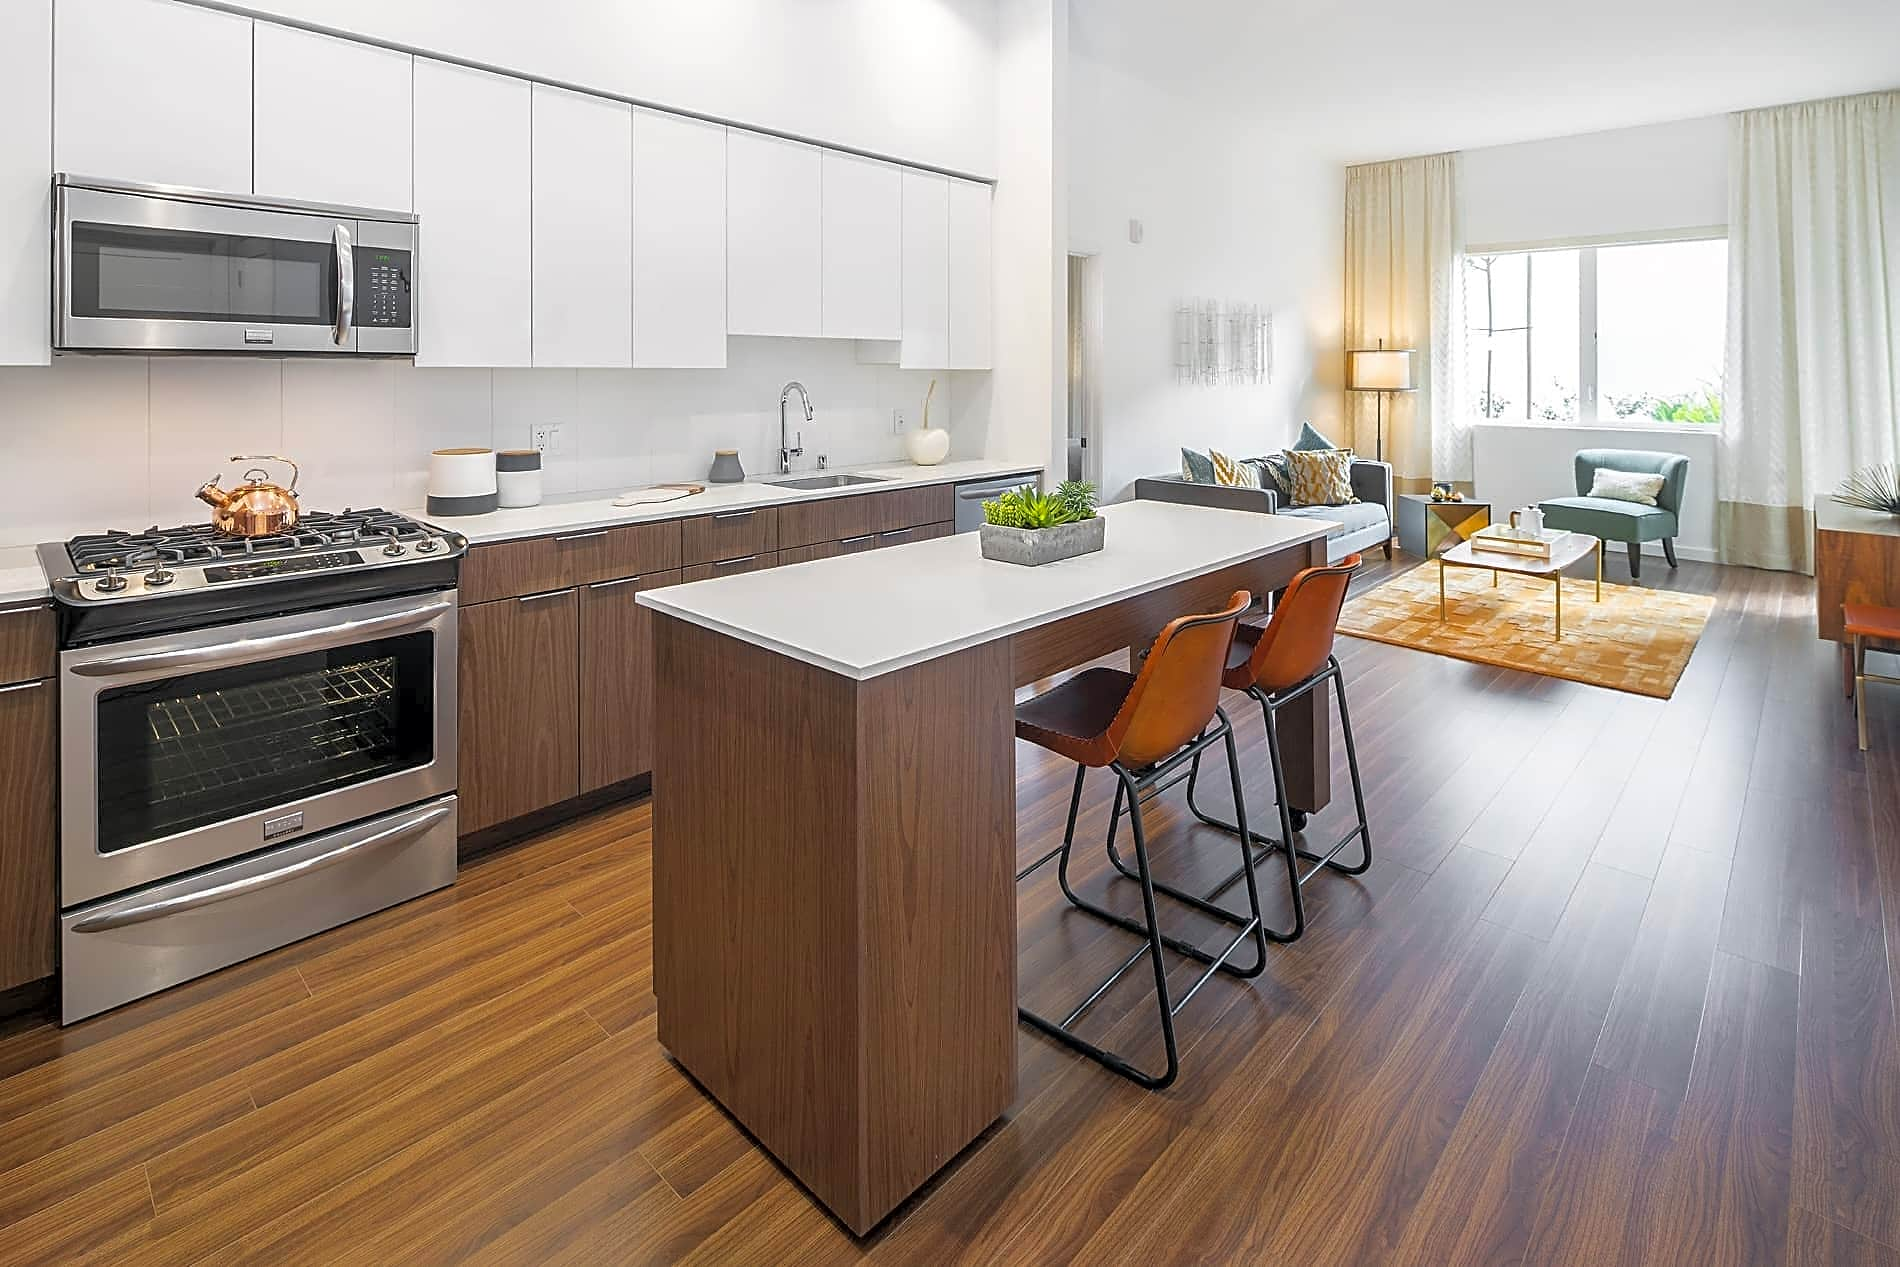 Apartments Near Foothill Verve for Foothill College Students in Los Altos Hills, CA